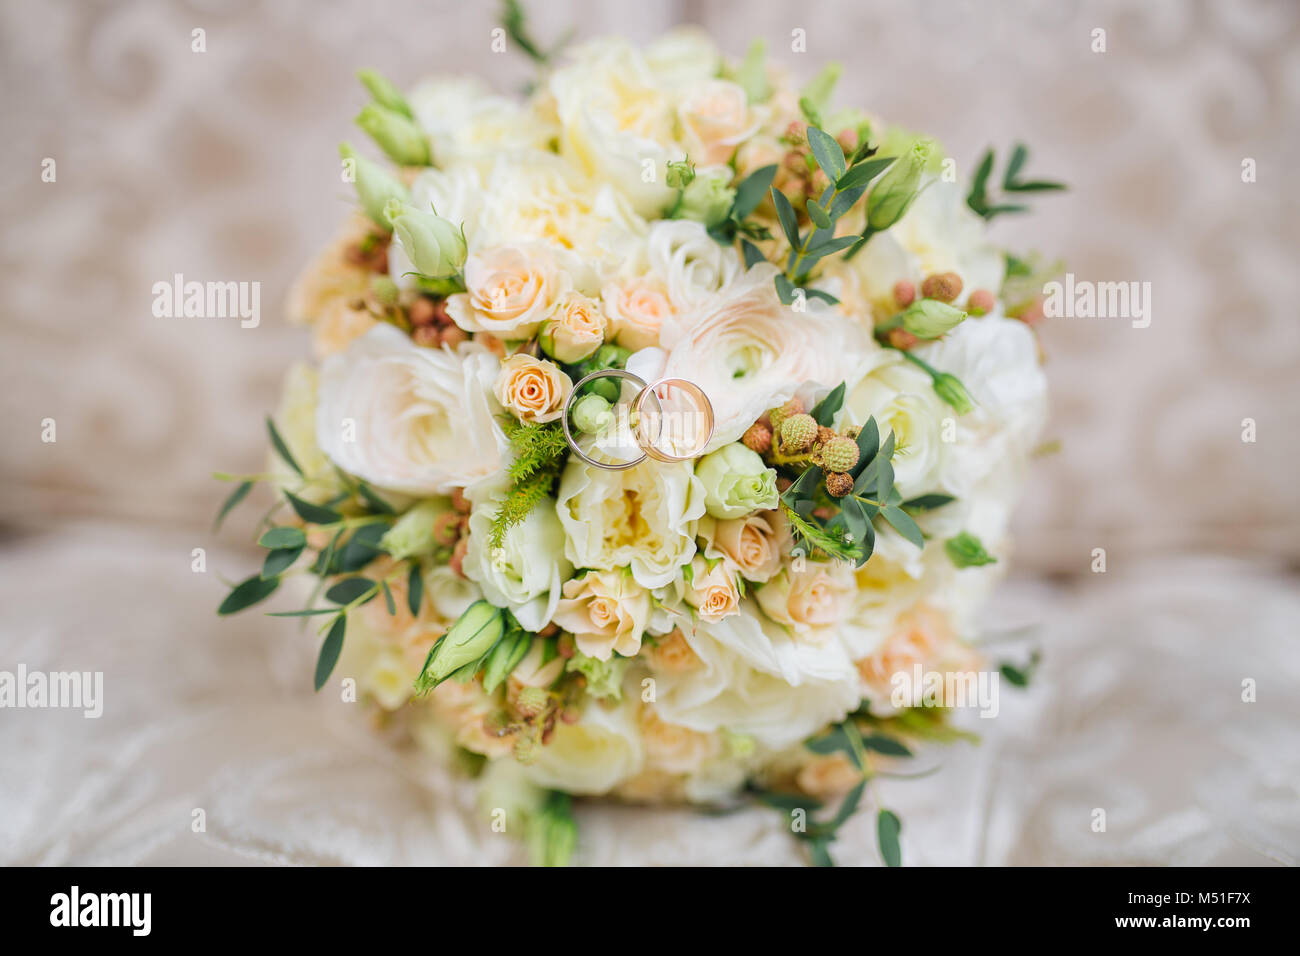 Wedding Bouquet Of Fresh Flowers Lies On The Couch Stock Photo ...